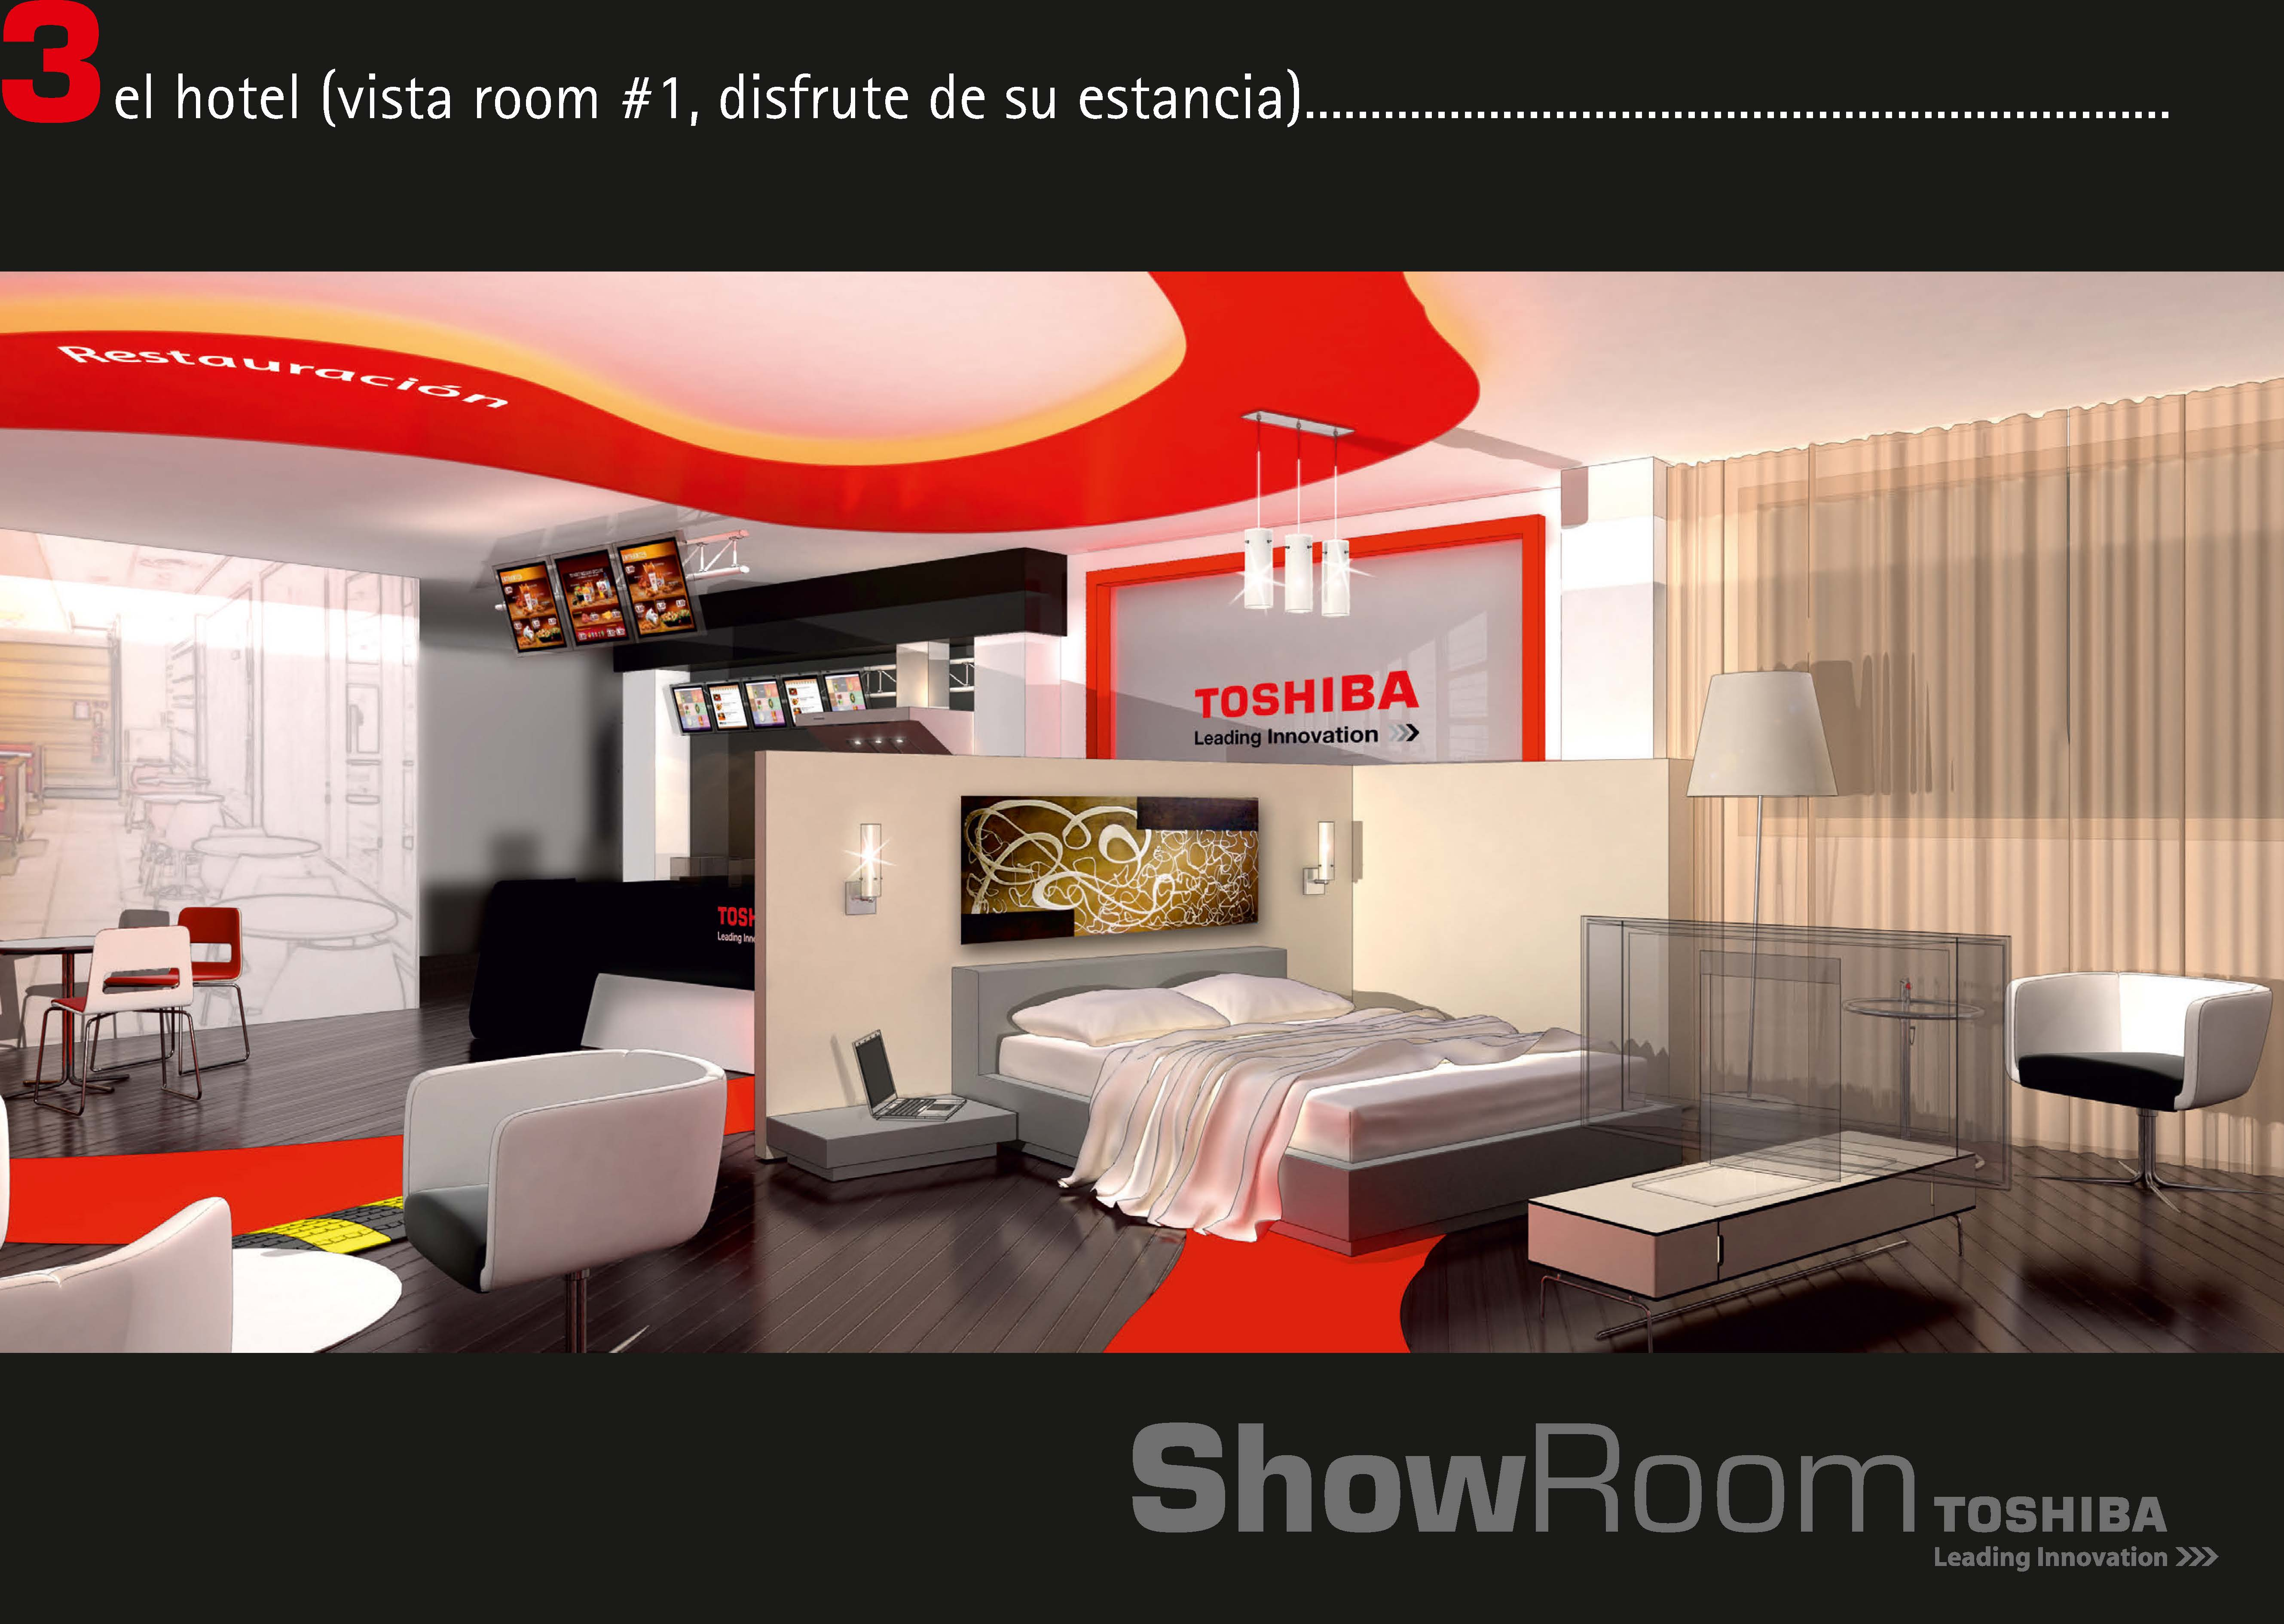 Expo TOSHIBA ShowRoom Madrid 3D (6).jpg